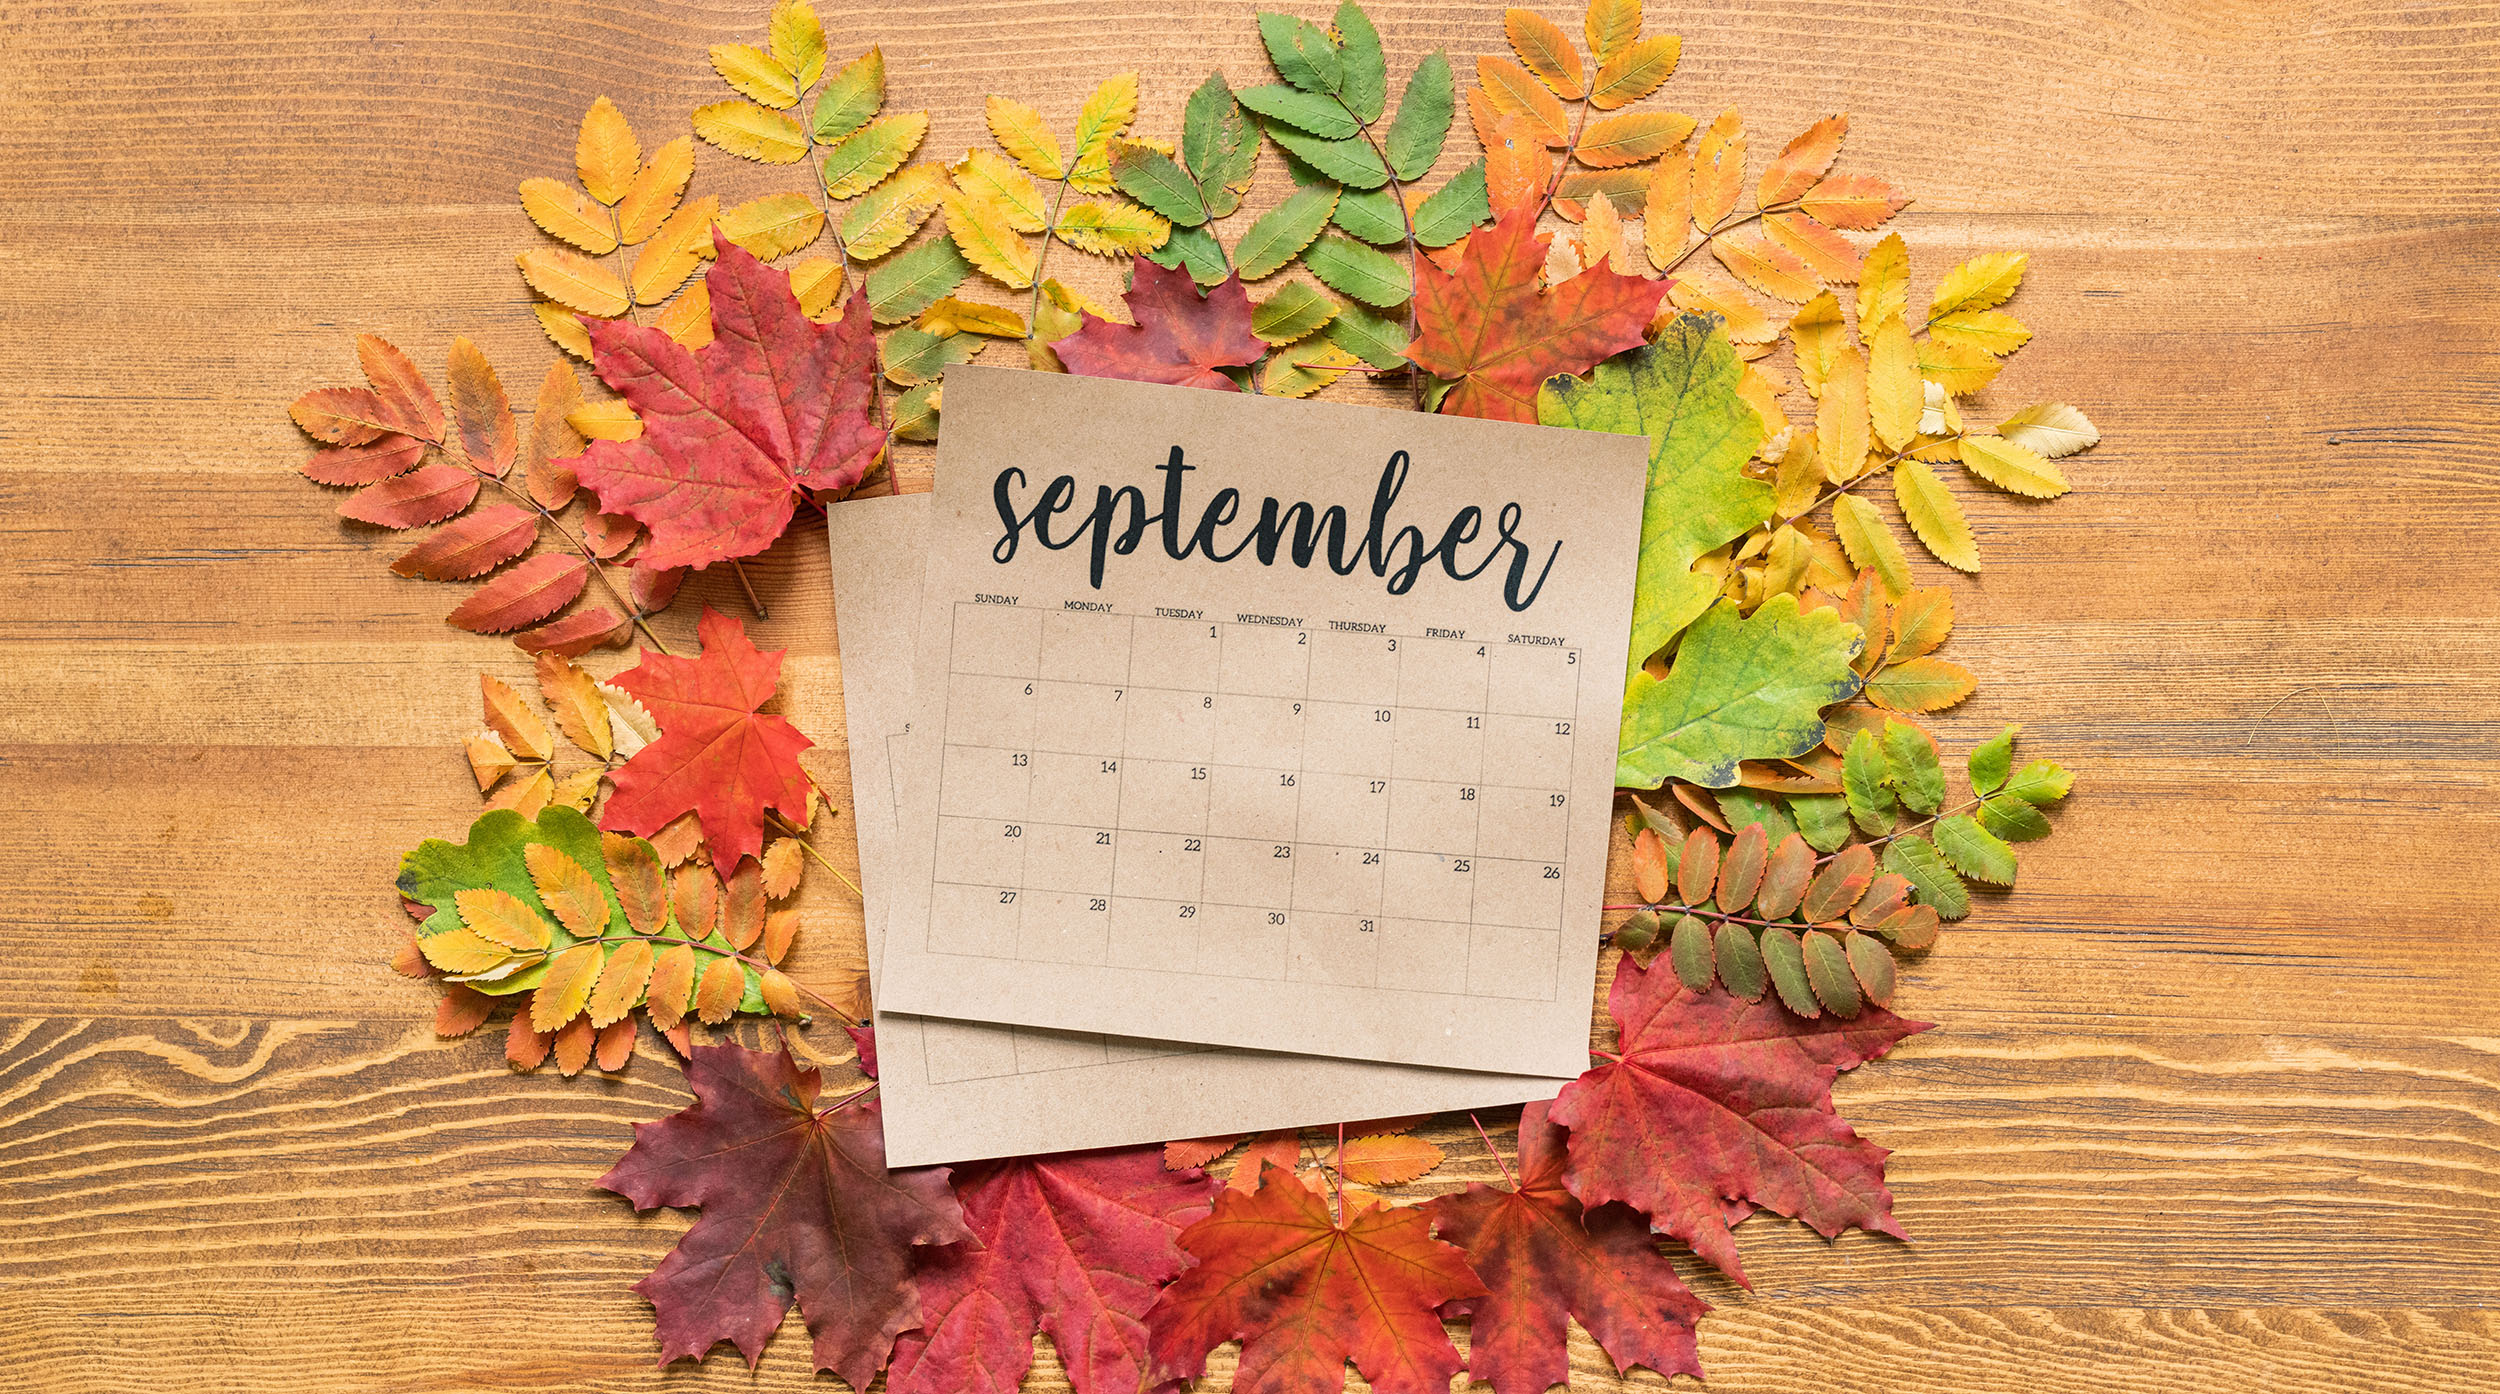 These are the social media events and holidays from the month of September.